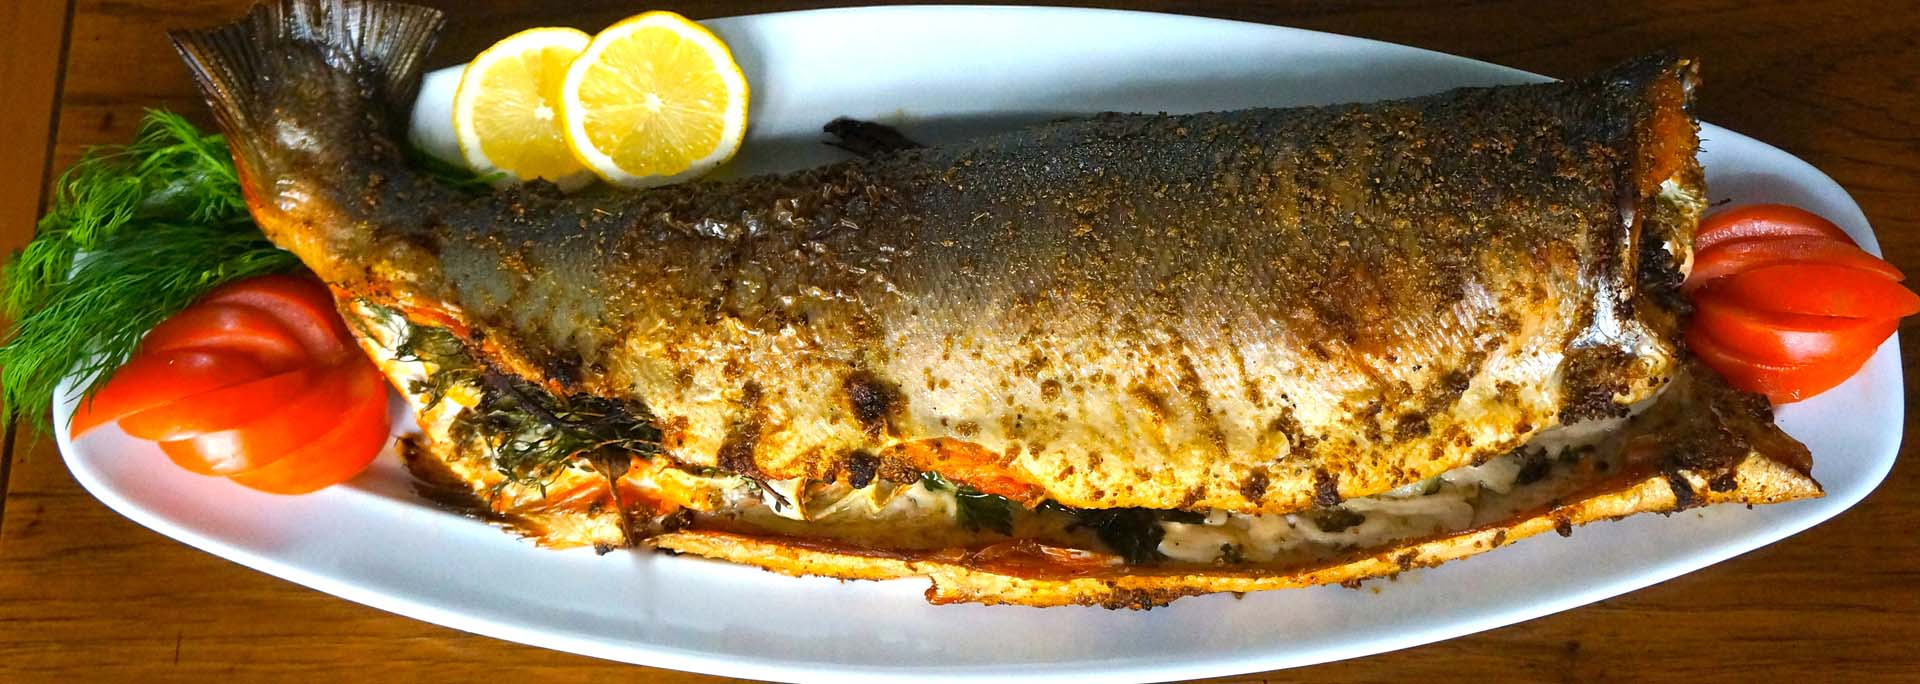 Herbed Roasted Salmon